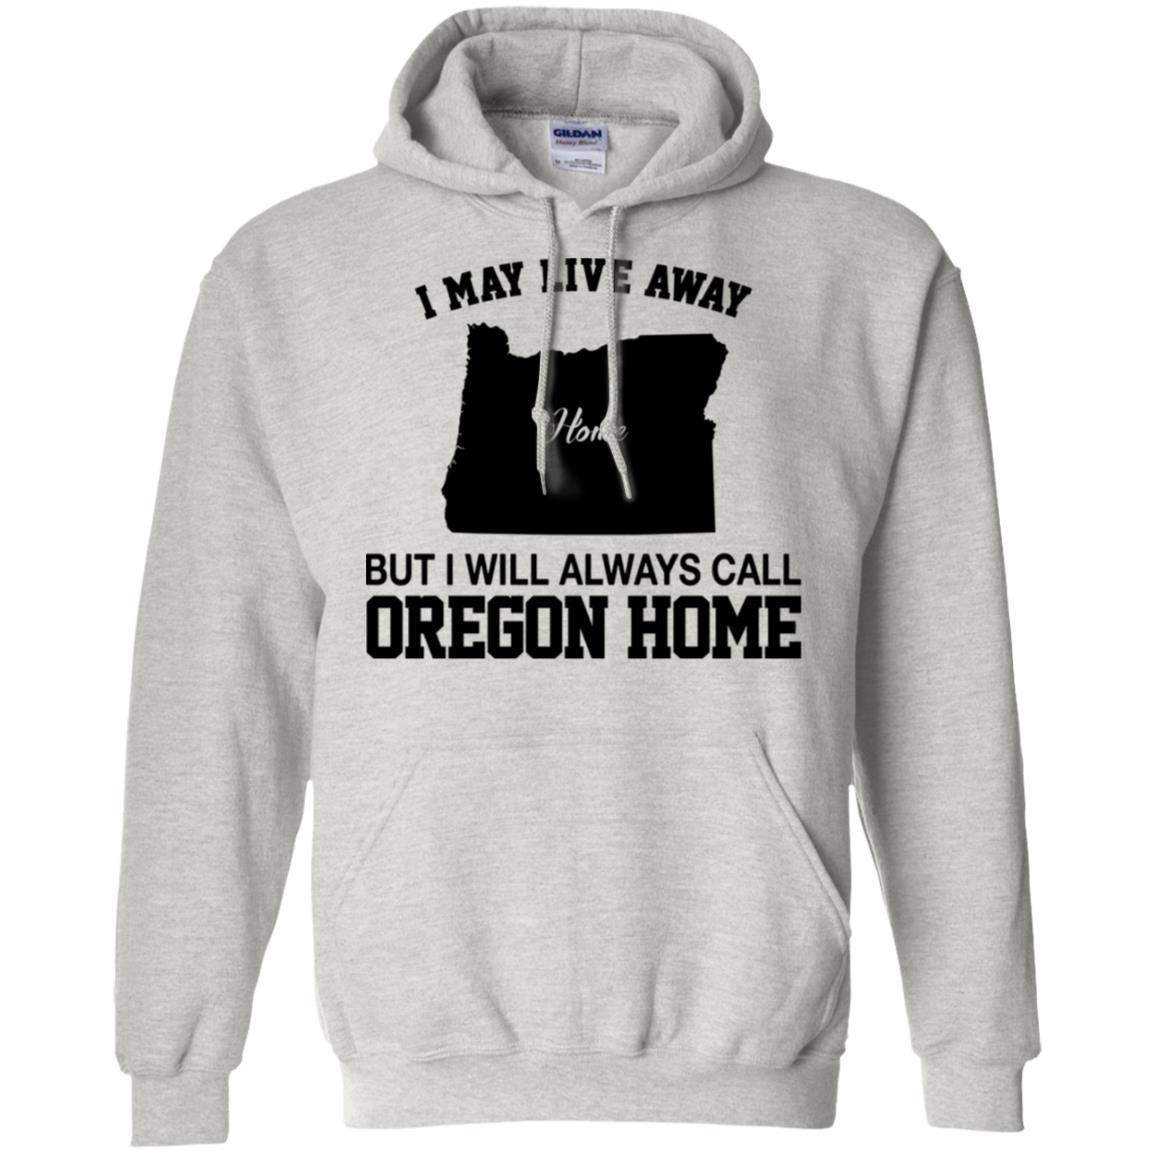 I MAY LIVE AWAY BUT I ALWAYS CALL OREGON HOME